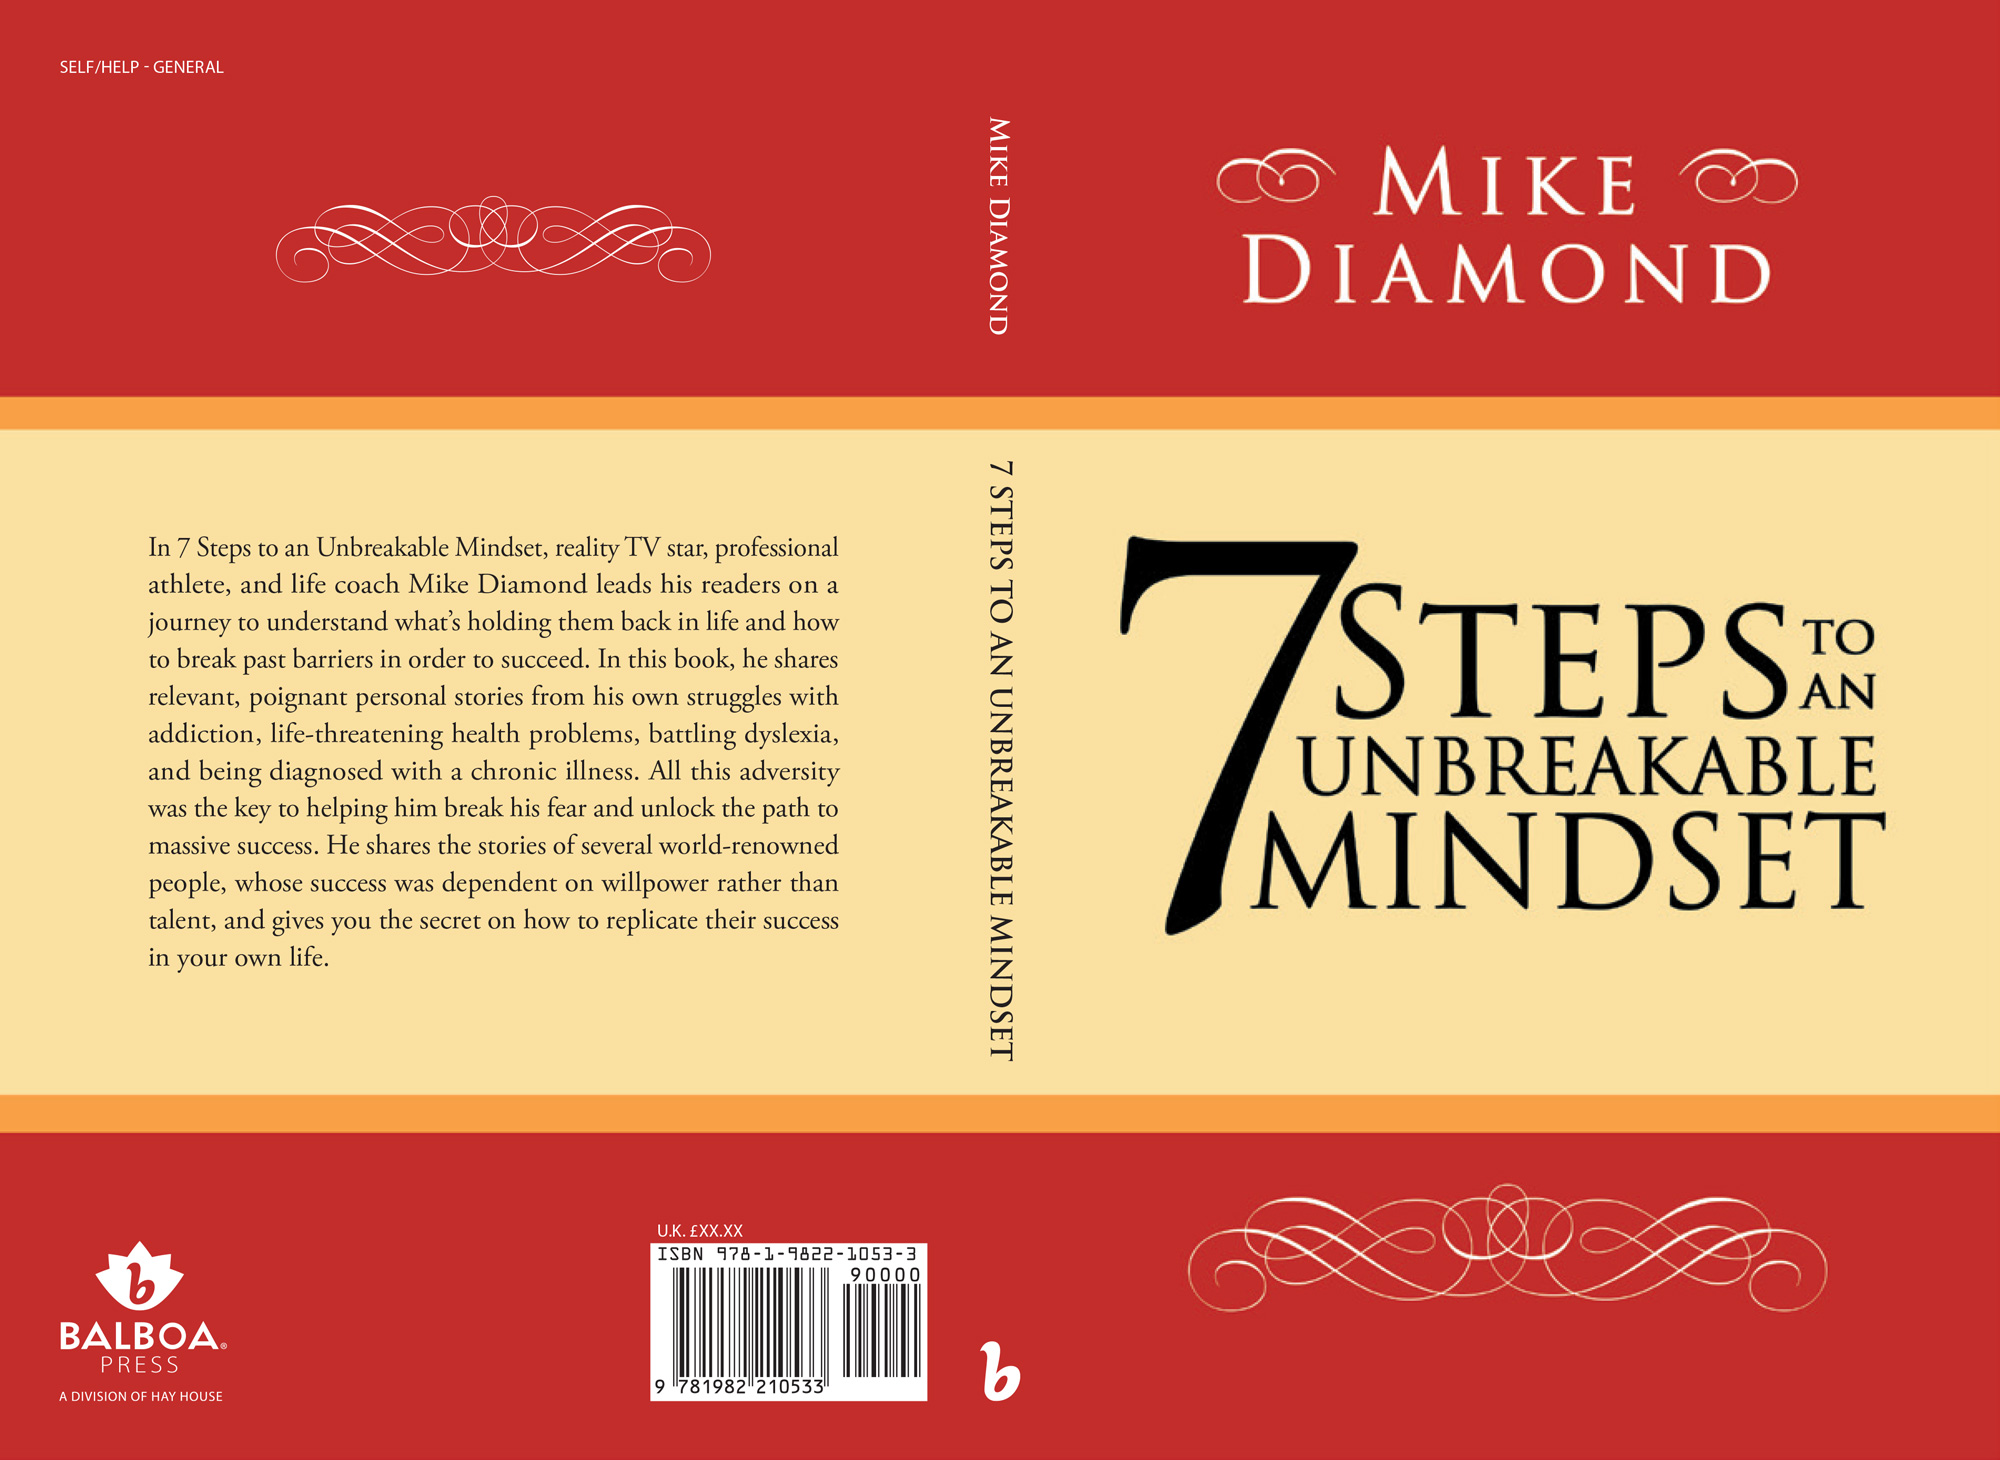 7 Steps to An Unbreakable Mindset by Mike Diamond